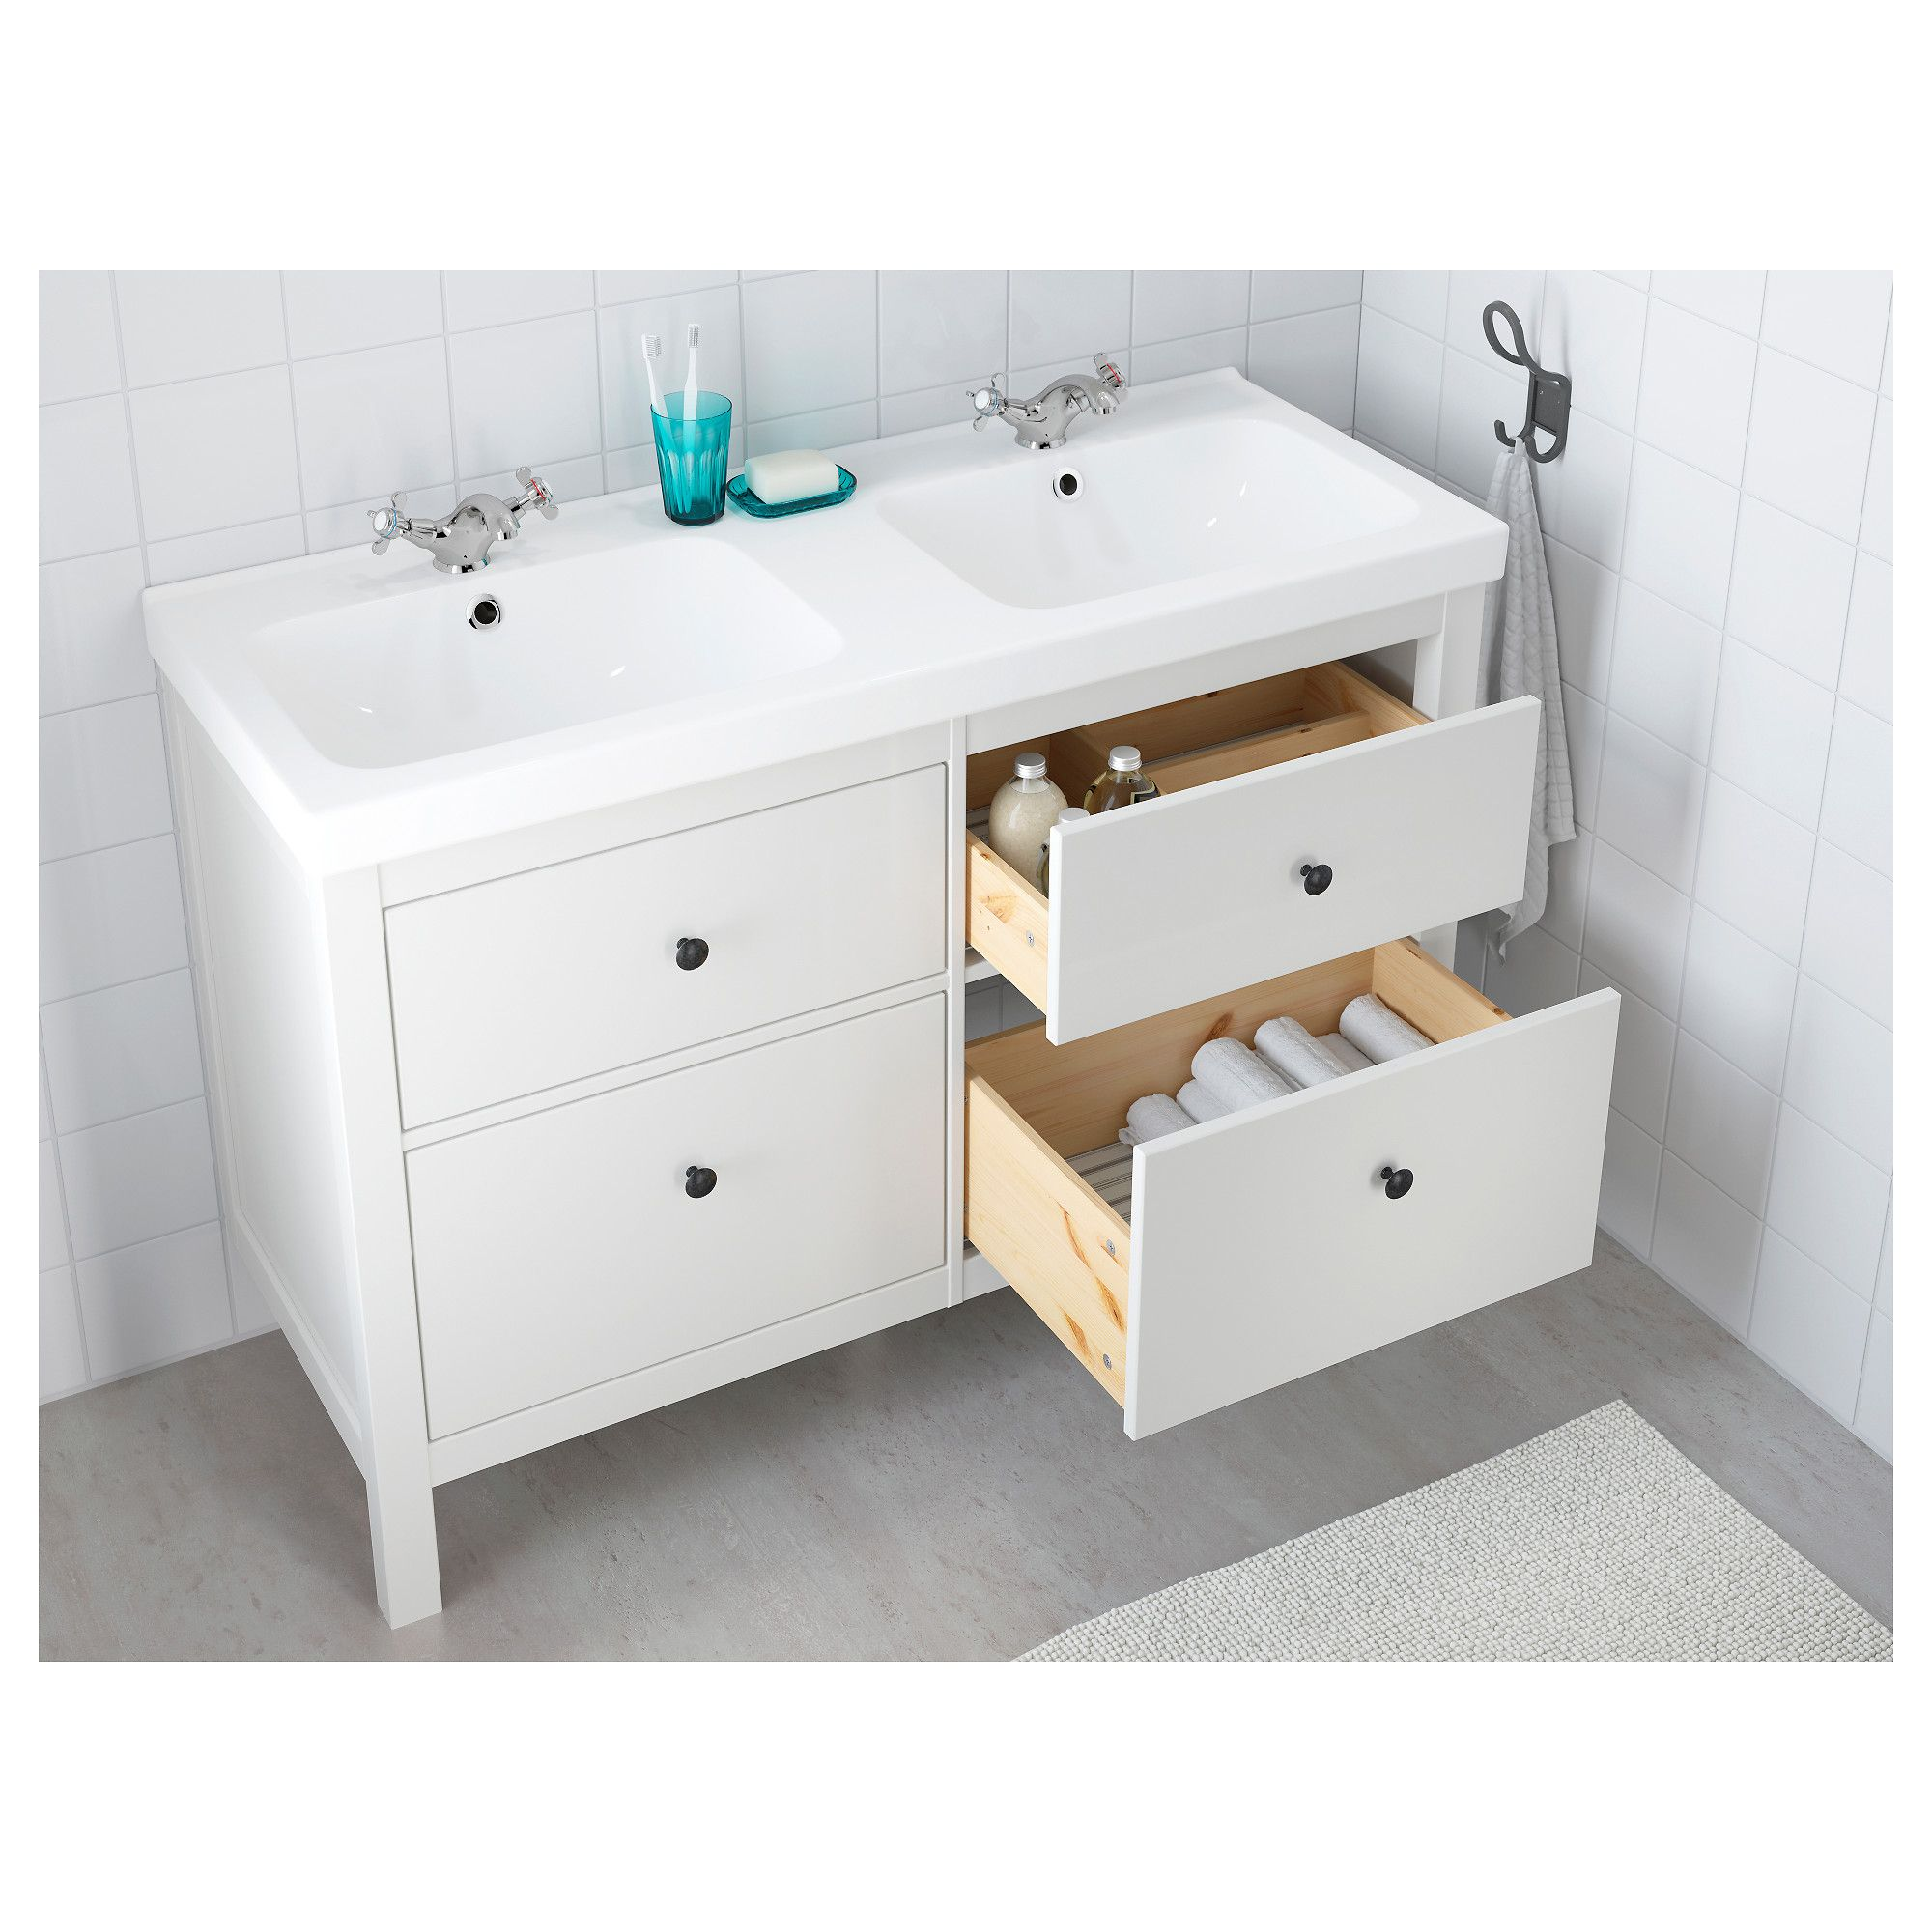 Ikea hemnes odensvik sink cabinet with 4 drawers white - Vanities for small bathrooms ikea ...